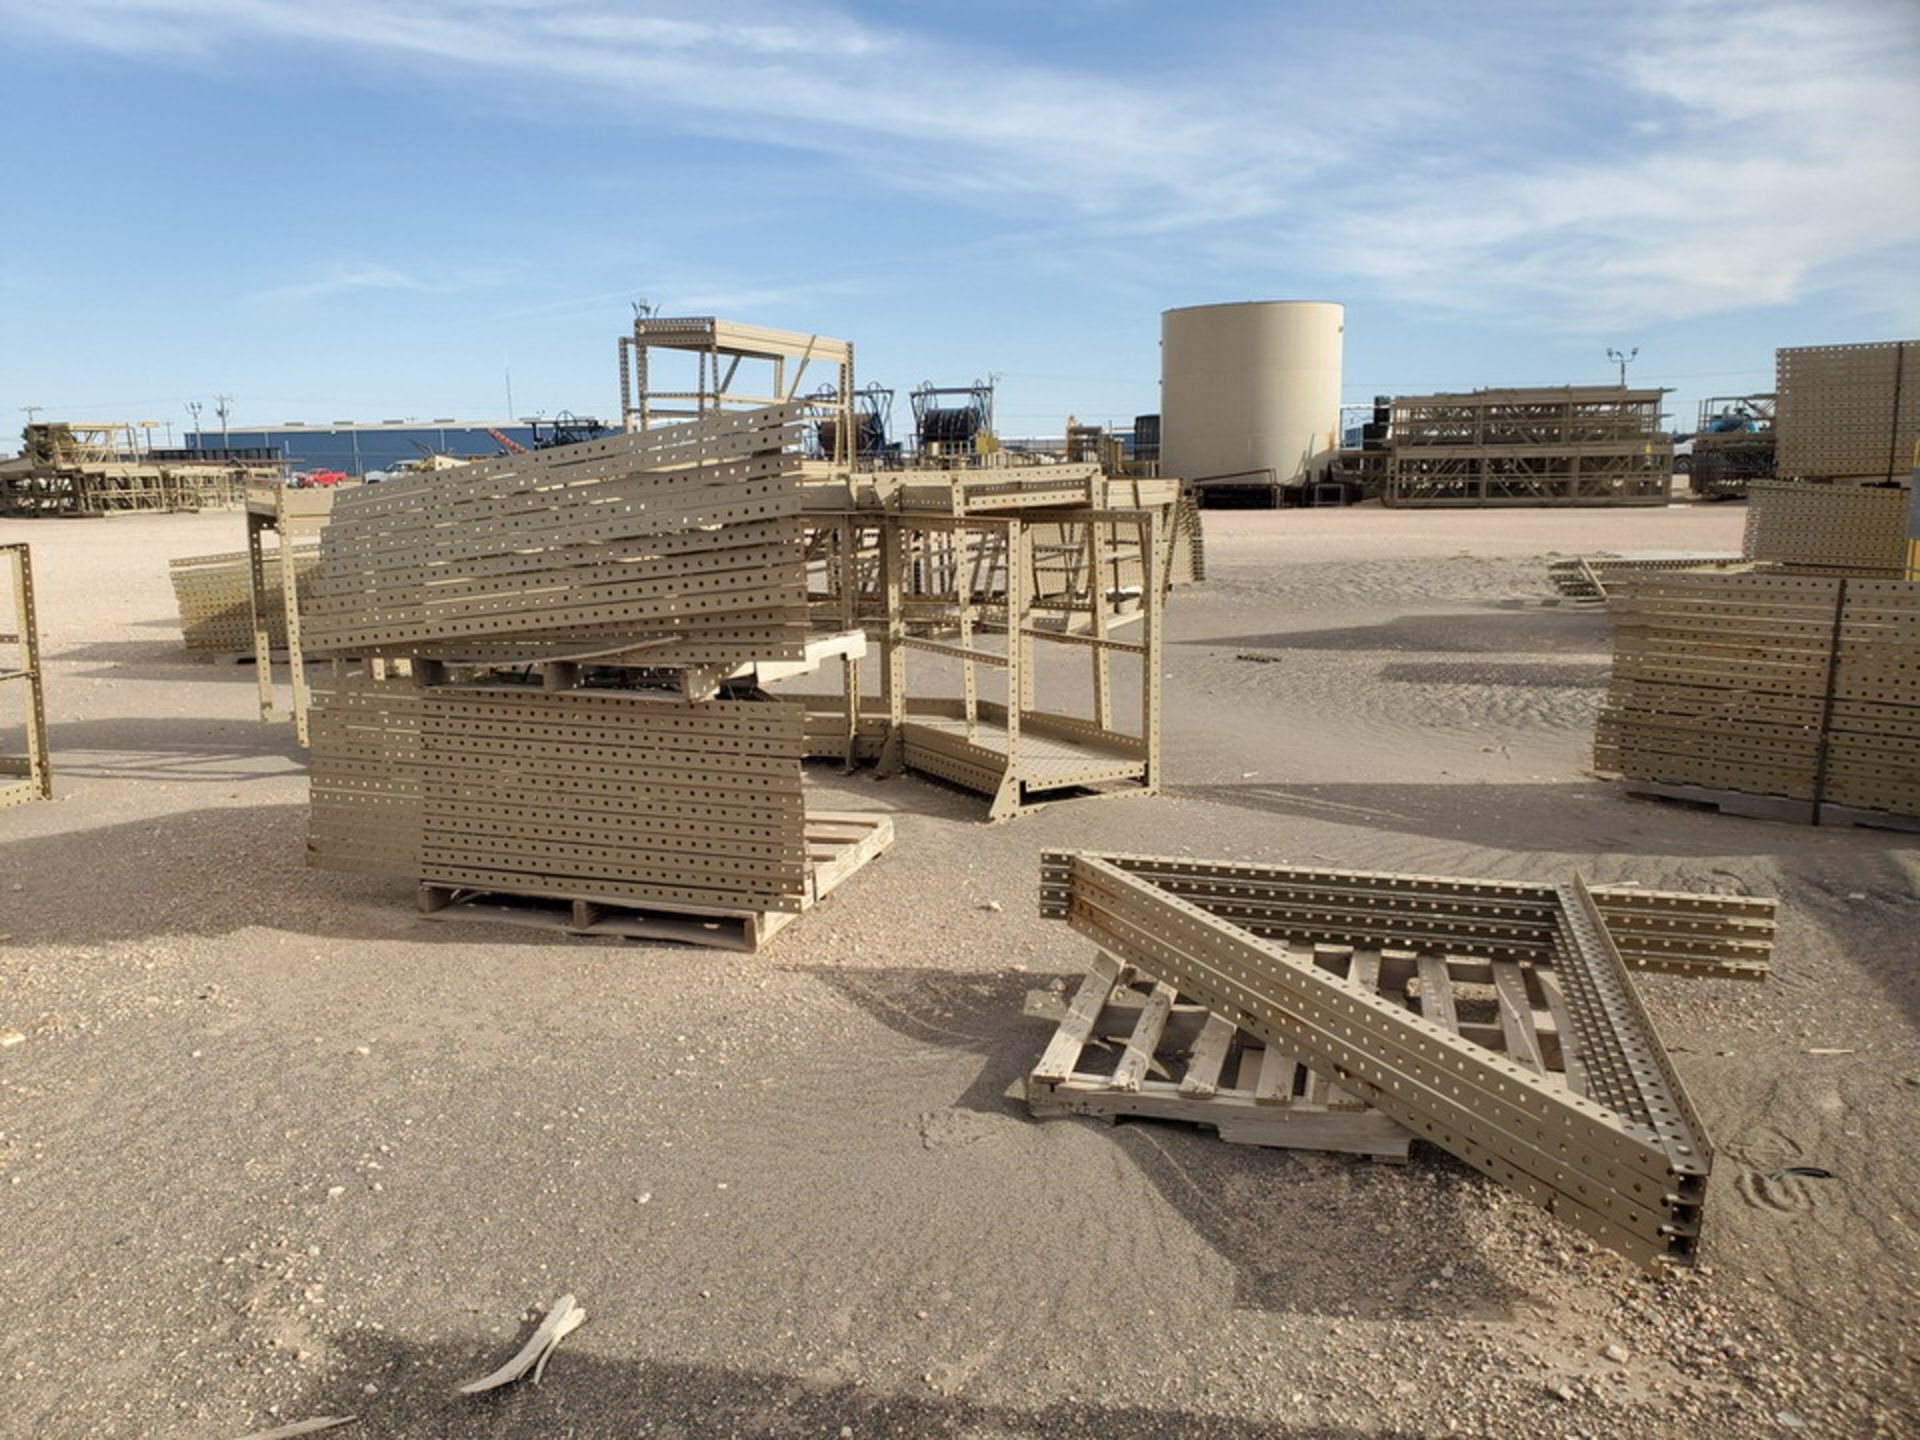 Disassembled Catwalk Sections - Image 14 of 20